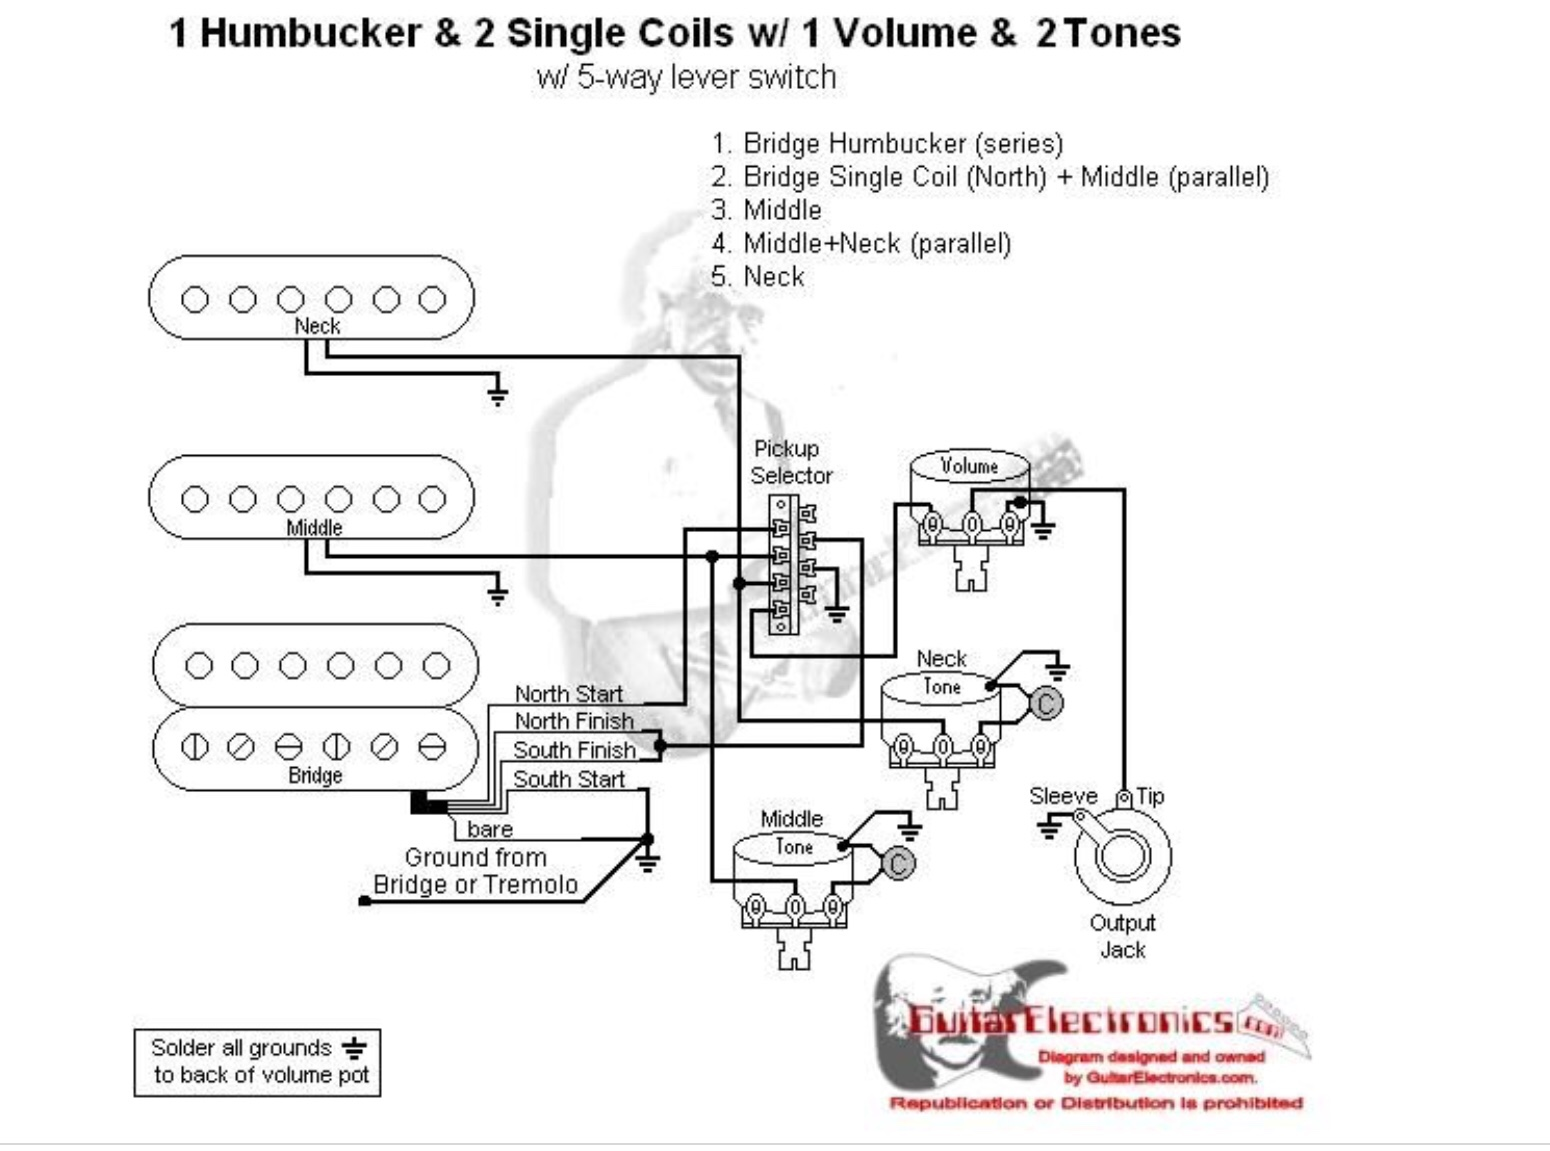 Want To Swap Out Pus The Acoustic Guitar Forum Stratocaster Wiring Diagram 500k Pots Also As Mentioned Its Good Install A Volume Pot But Squiers Usually Come With In That Case Id Advise 250k For